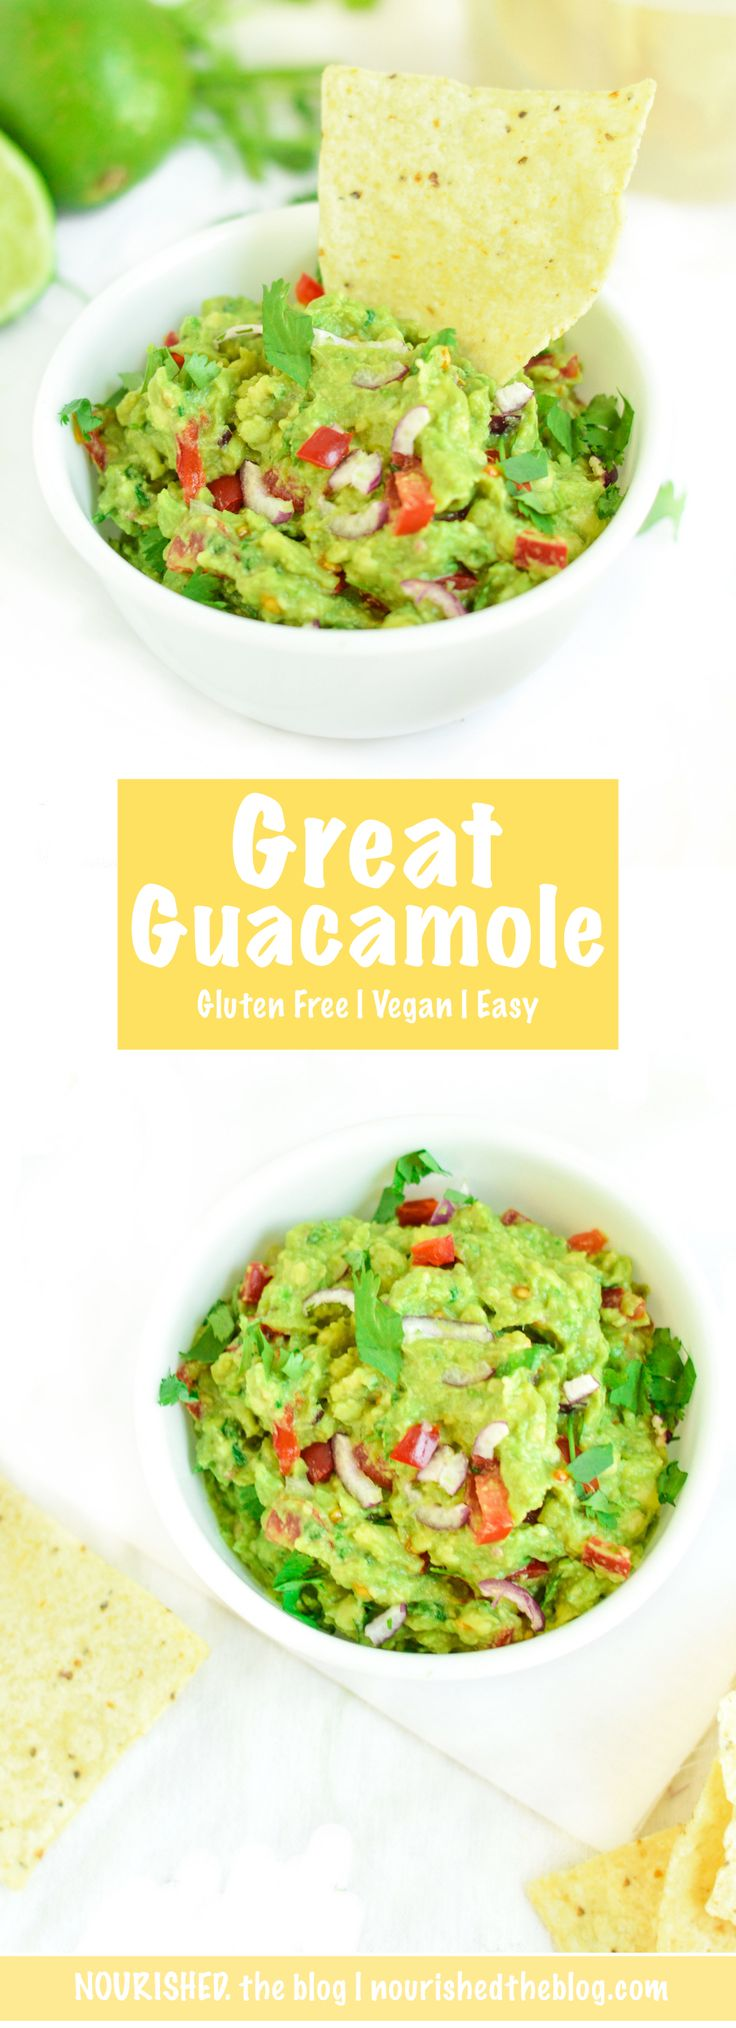 A Great Guacamole recipe! This is a quick and delicious dip made complete vegan and gluten free with avocados, tomatoes, red onion, garlic, cilantro, lime and spicy jalapeño peppers. Everyone will go crazy for this great guac!